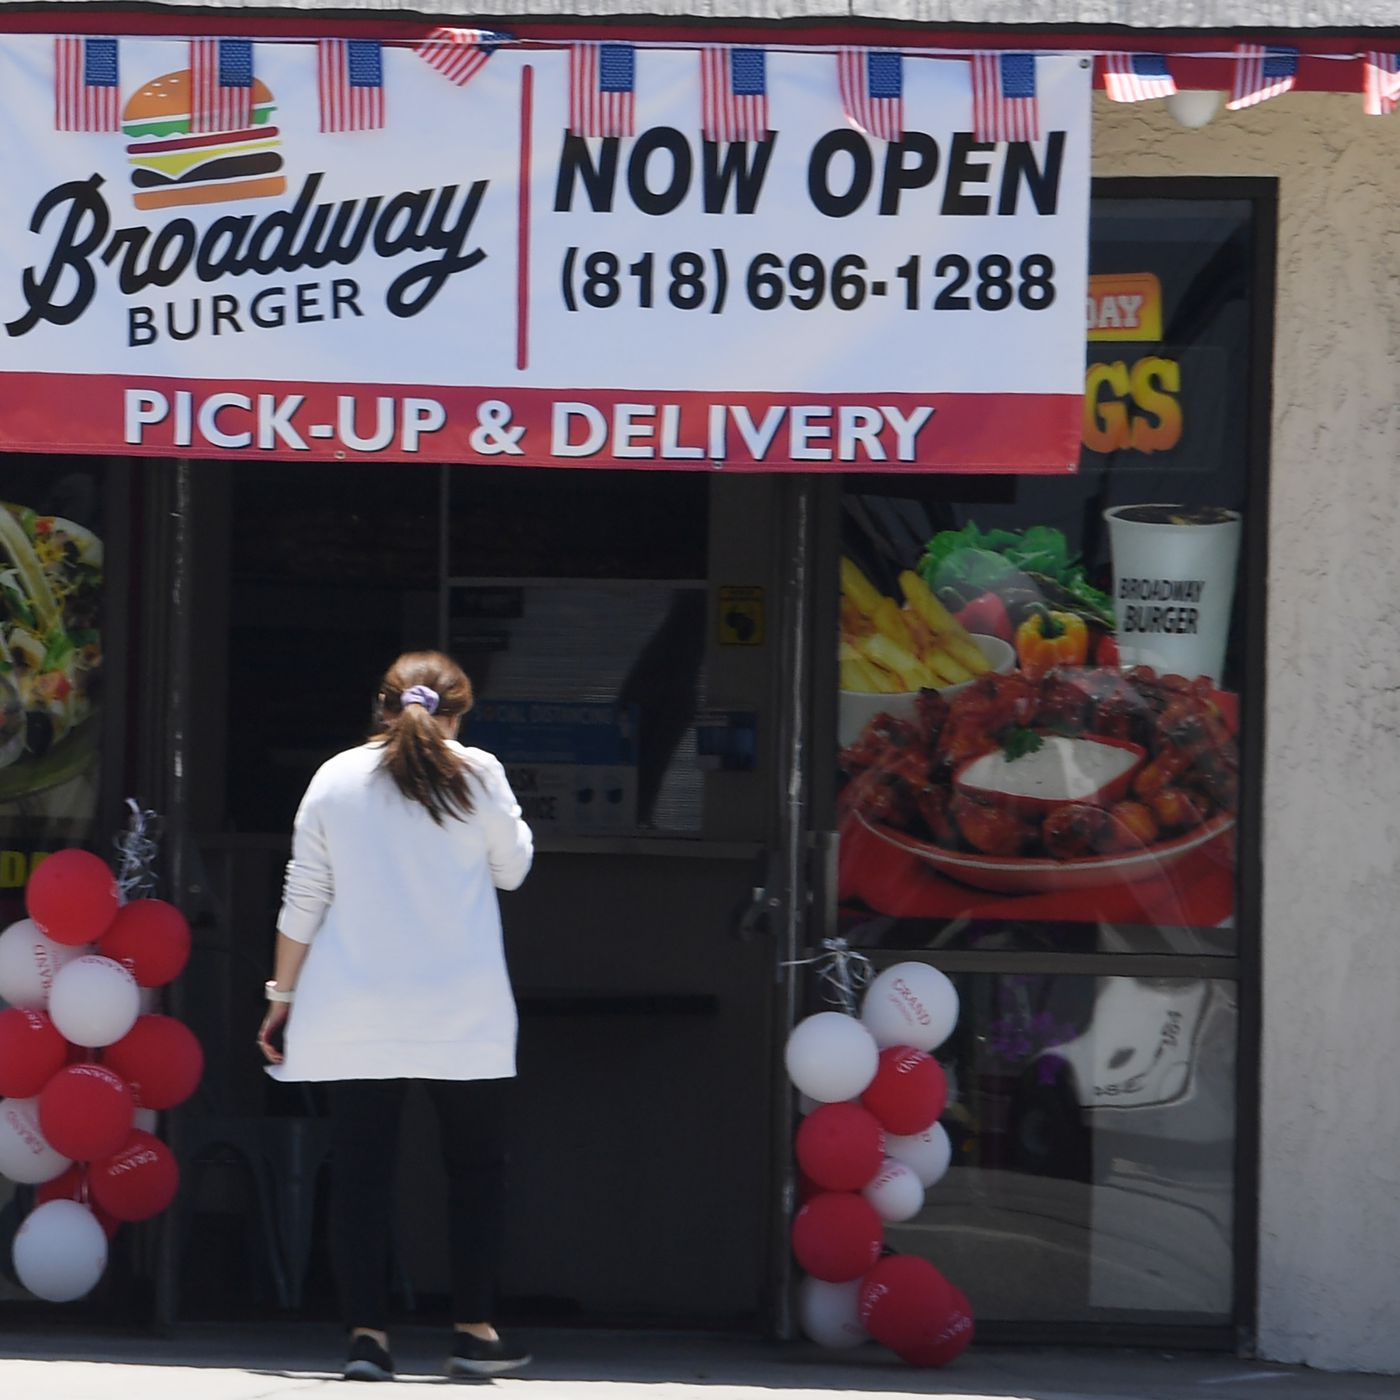 La Fines Restaurants And Businesses For Posting We Re Open Signs During Pandemic Eater La